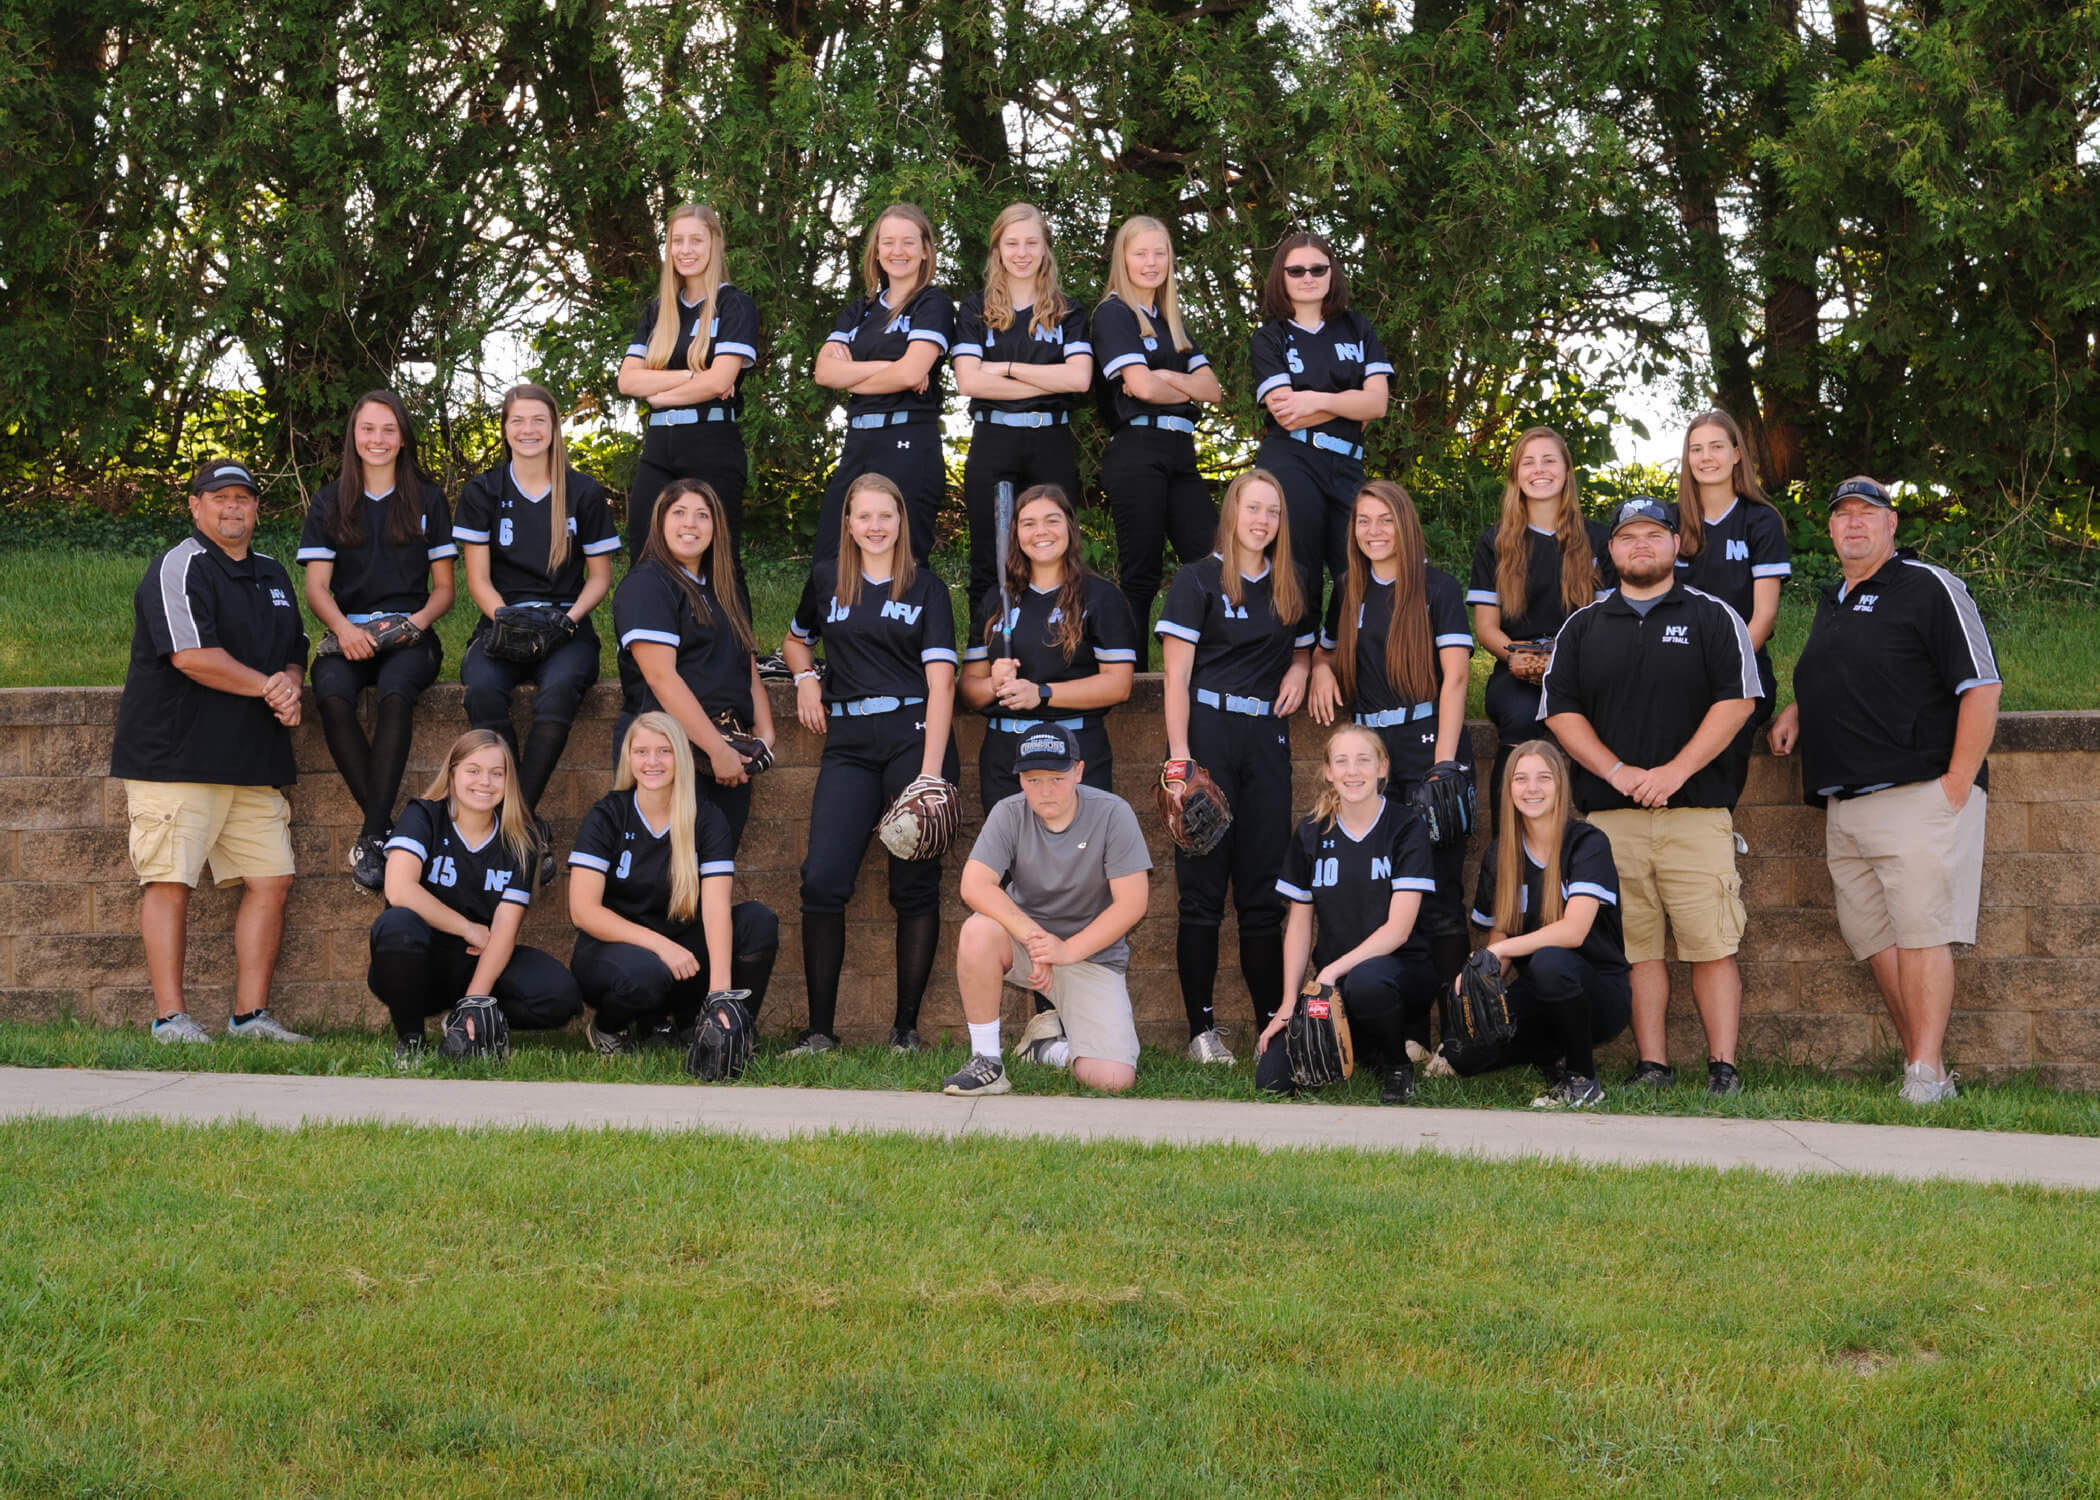 NFV High School Softball 2019 Varsity Team Photograph